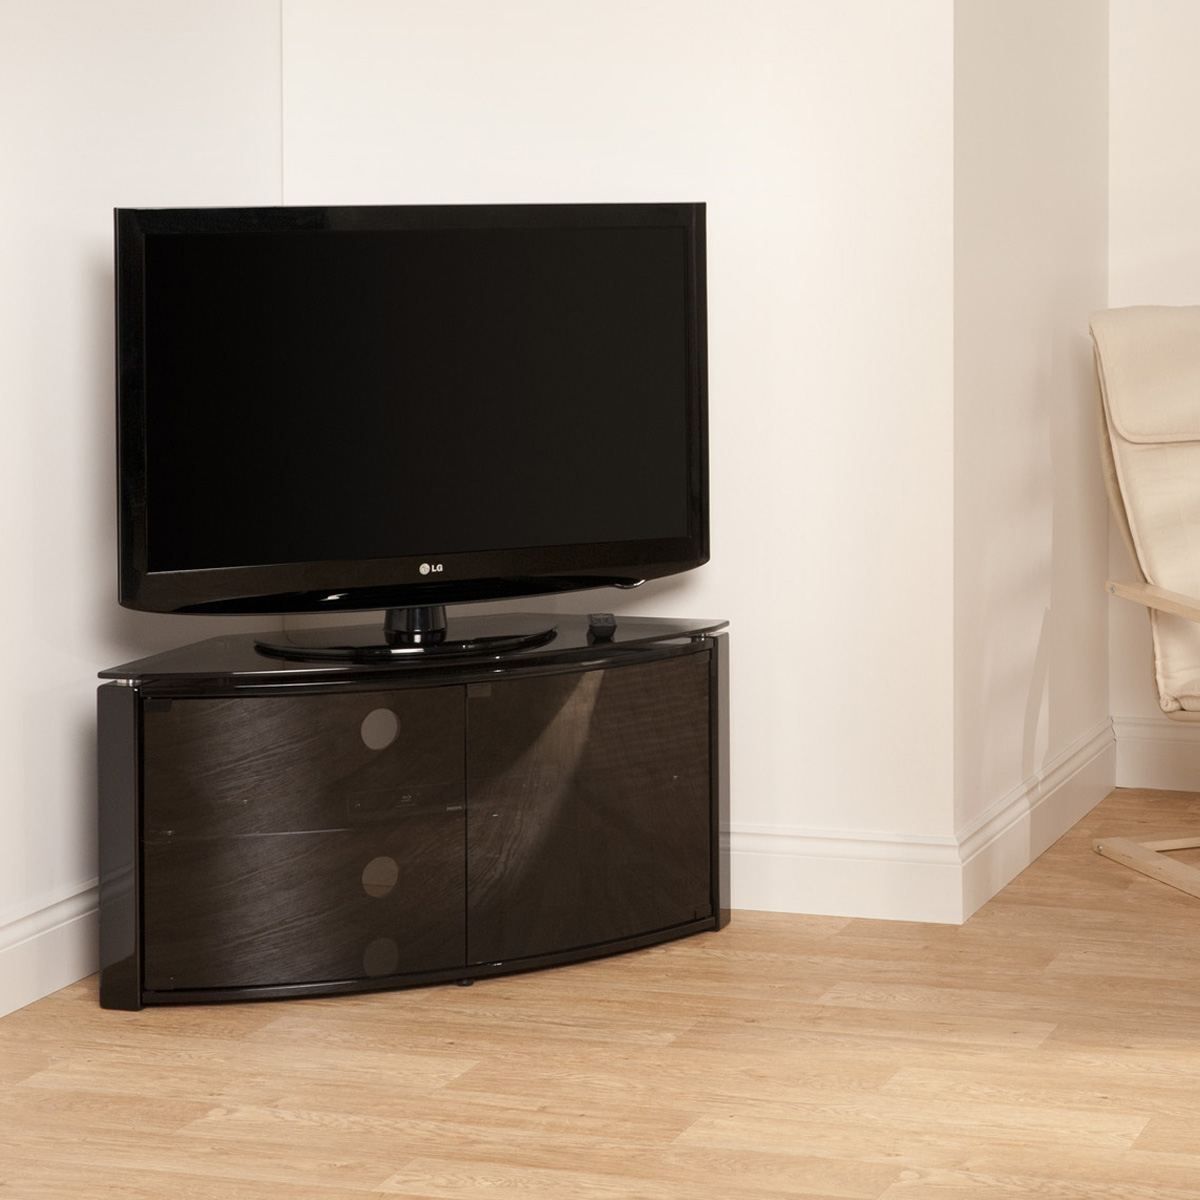 curved tv stand inc glass door 32 42 inch screen enlarged preview